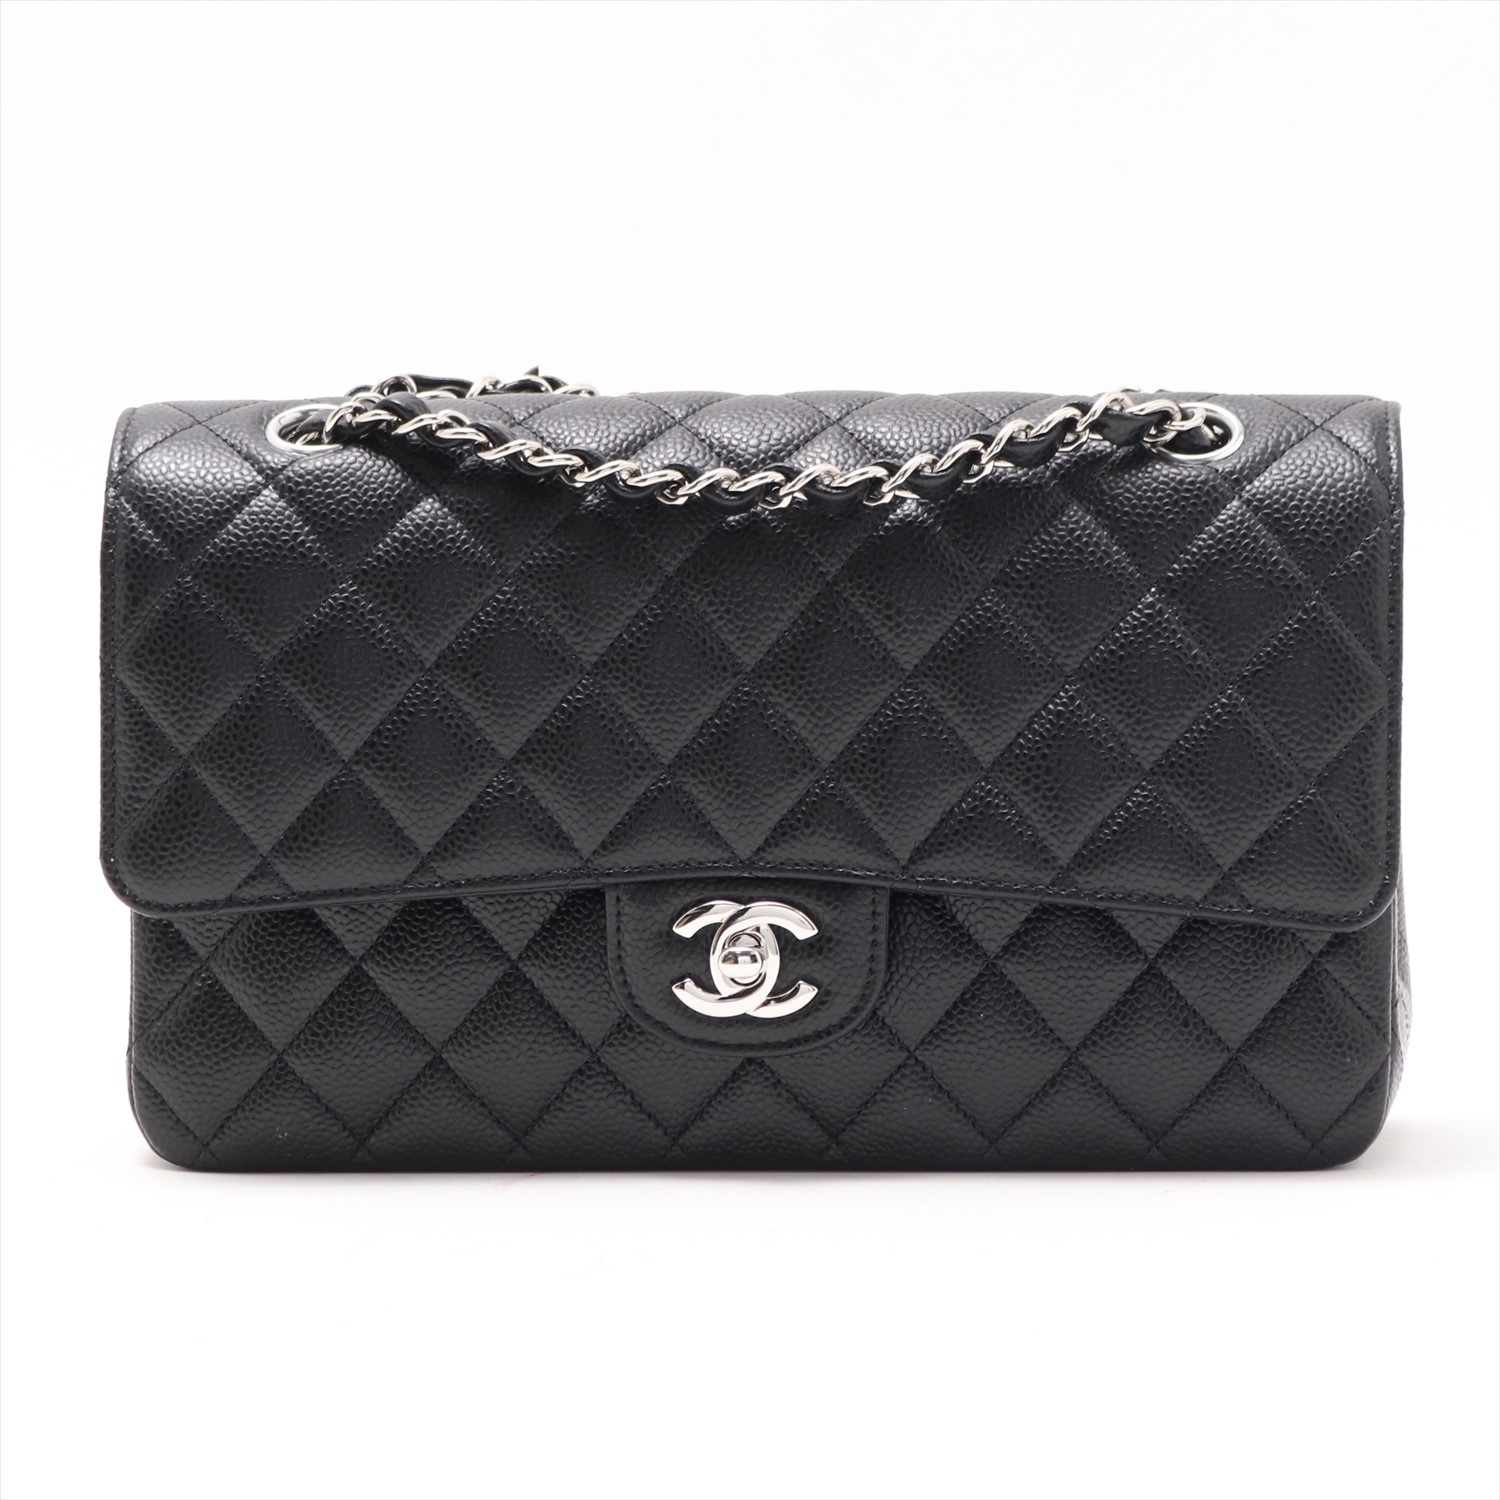 [Used goods] Chanel Matorasse caviar skin double flap double chain bag black Silver hardware 26 series